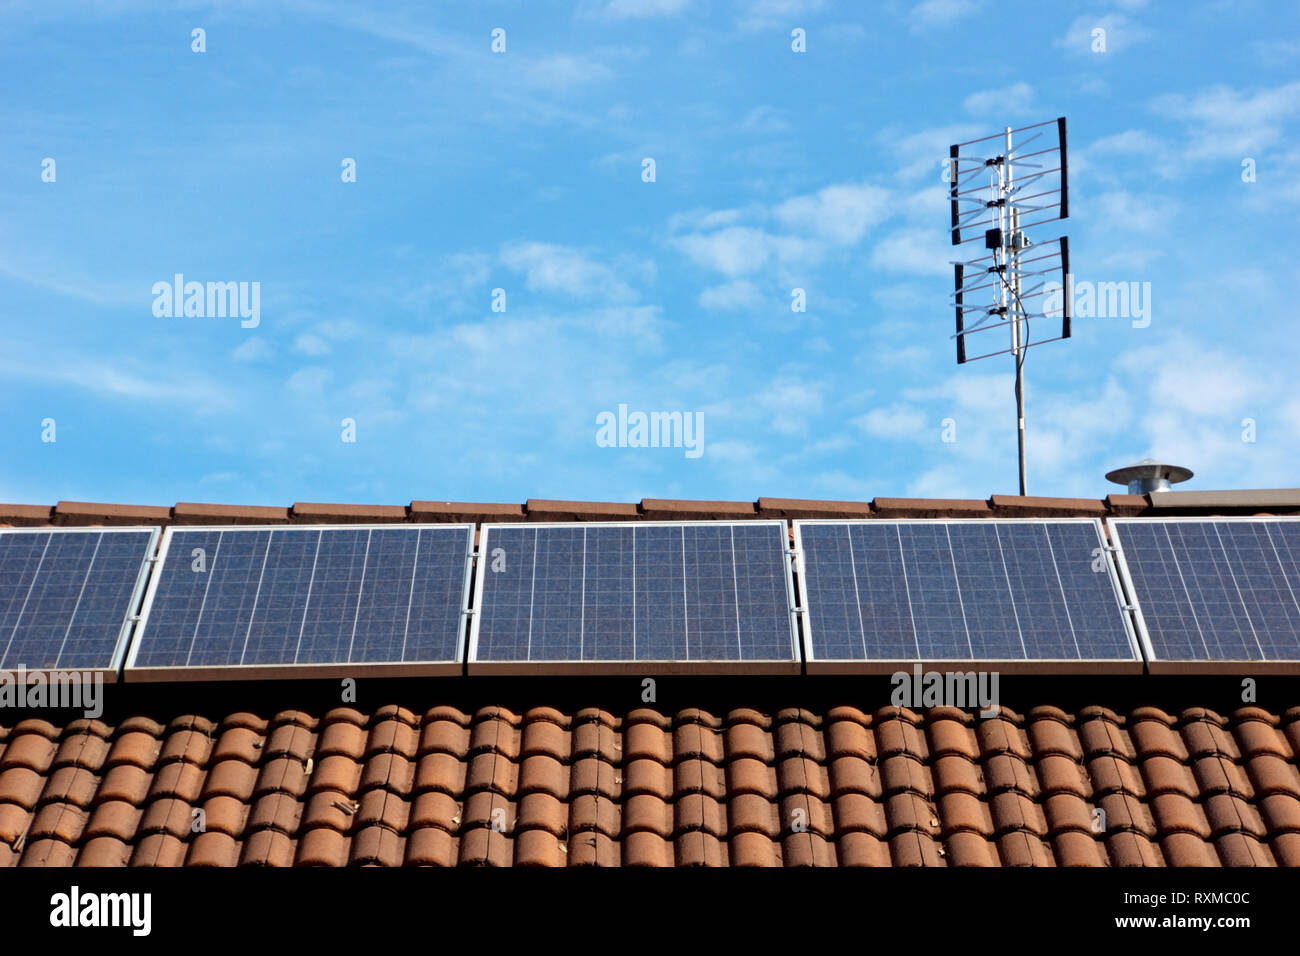 Photovoltaic cell, solar panel roof display, an alternative energy, sustainable resource, in Victoria, Australia. - Stock Image